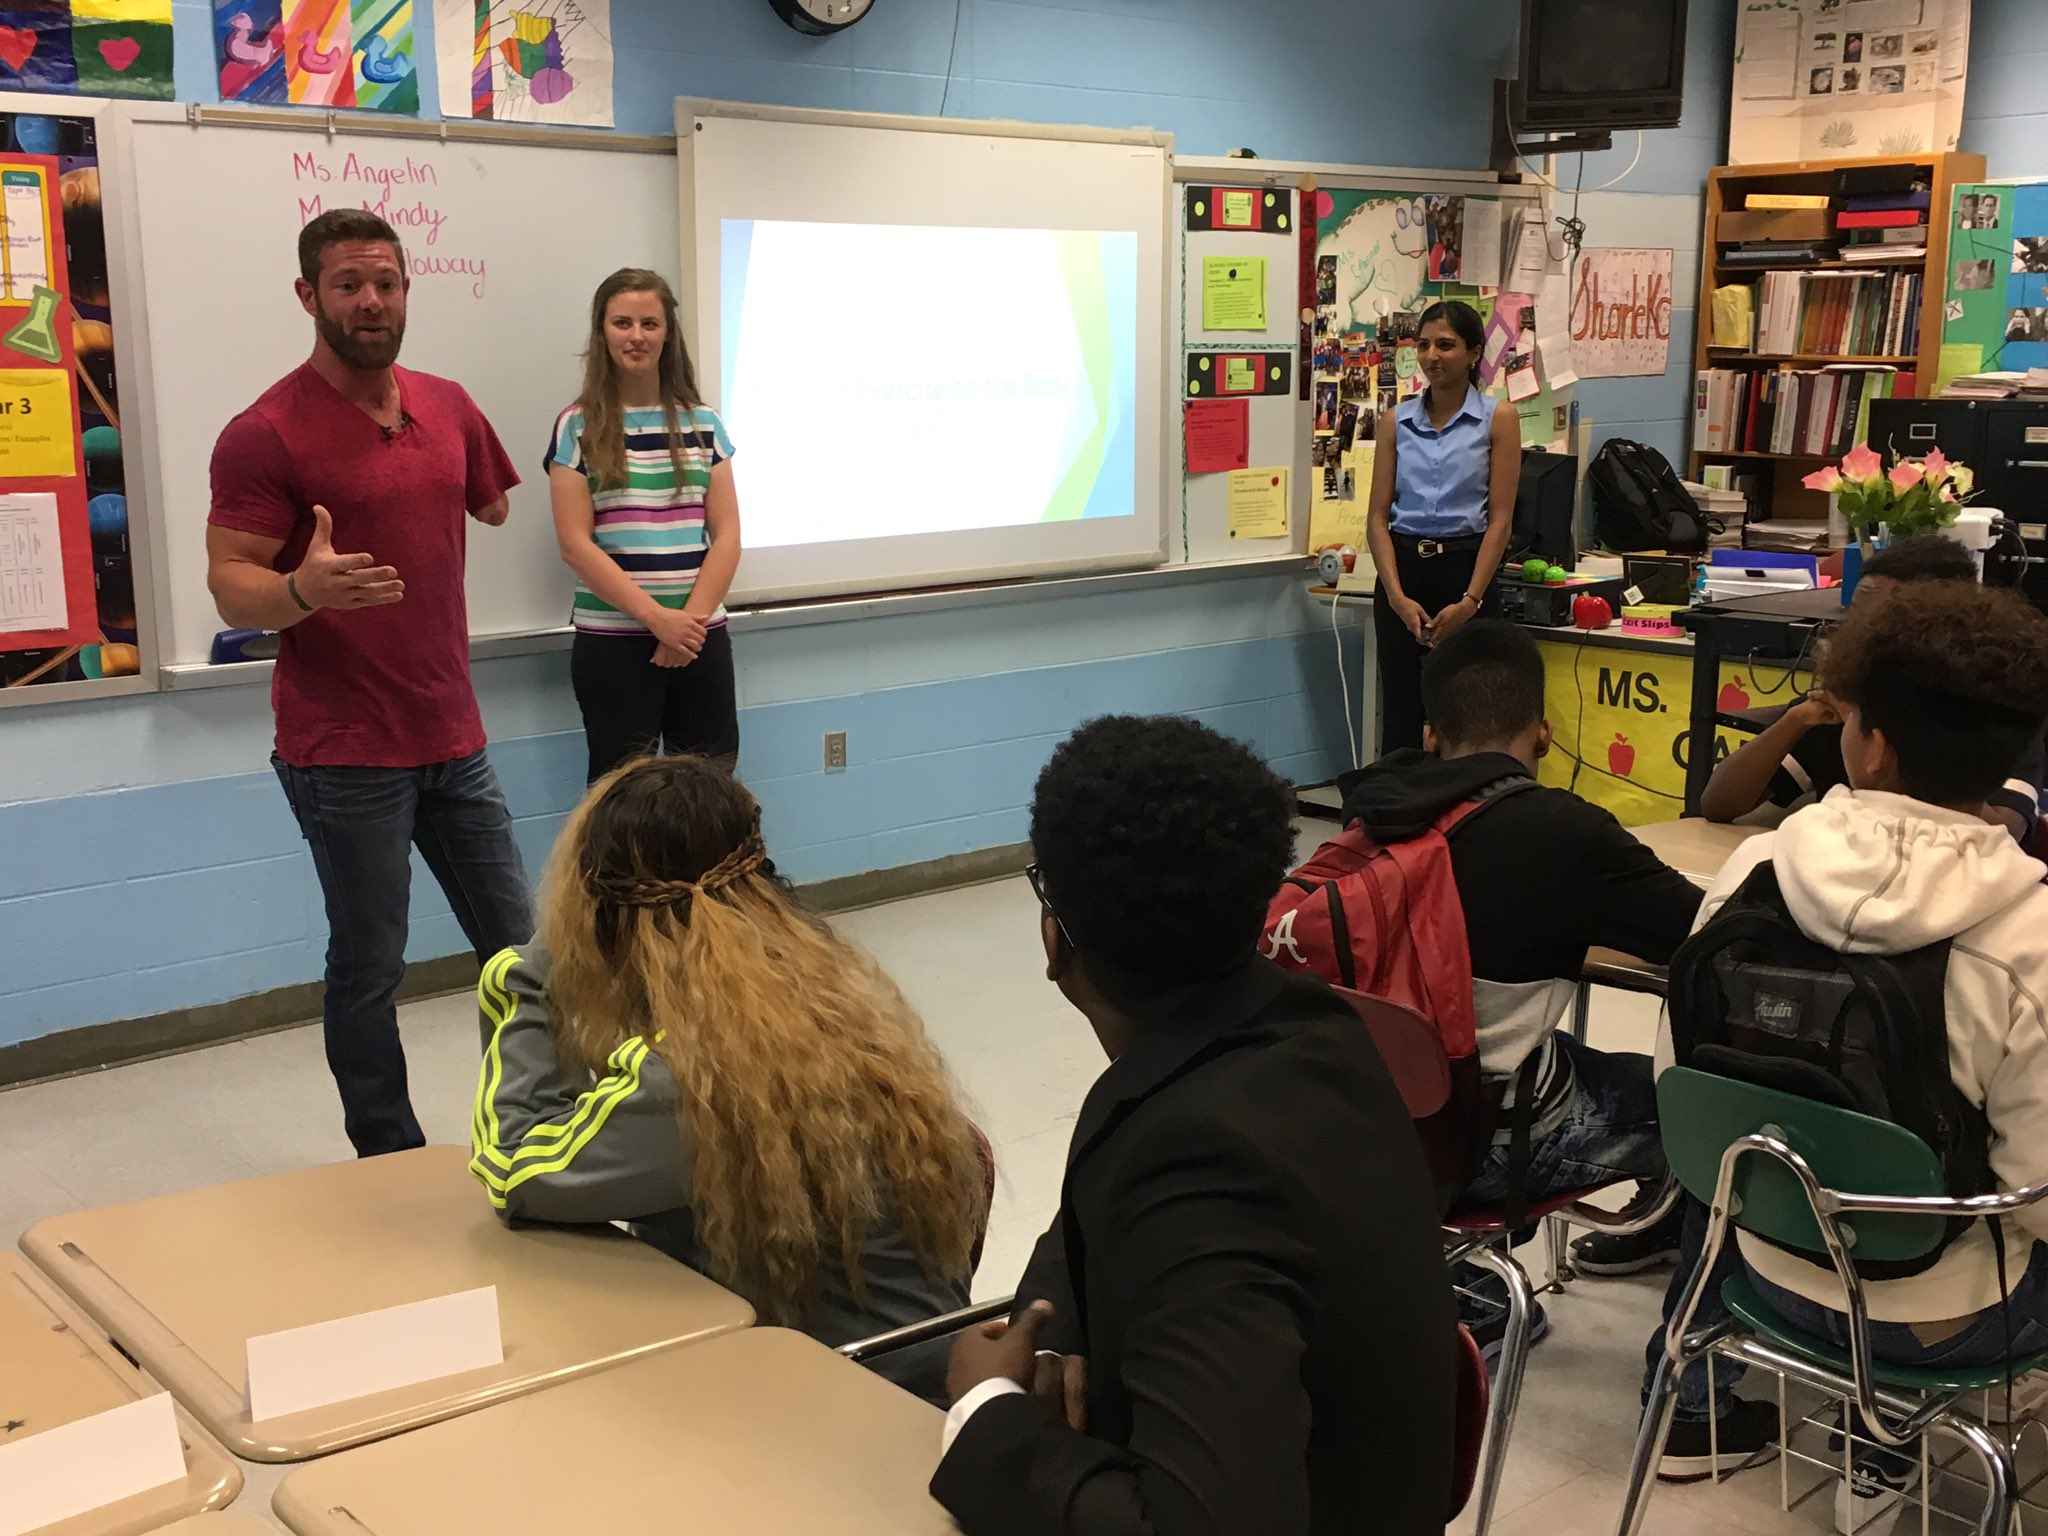 .@Noah_Galloway It begins! @Noah_Galloway kicks of the lesson & then hands it over to Angelin & Mindy, UABTeach students. #uteachweek #uteach20 @UABTeach https://t.co/uasysAdot7